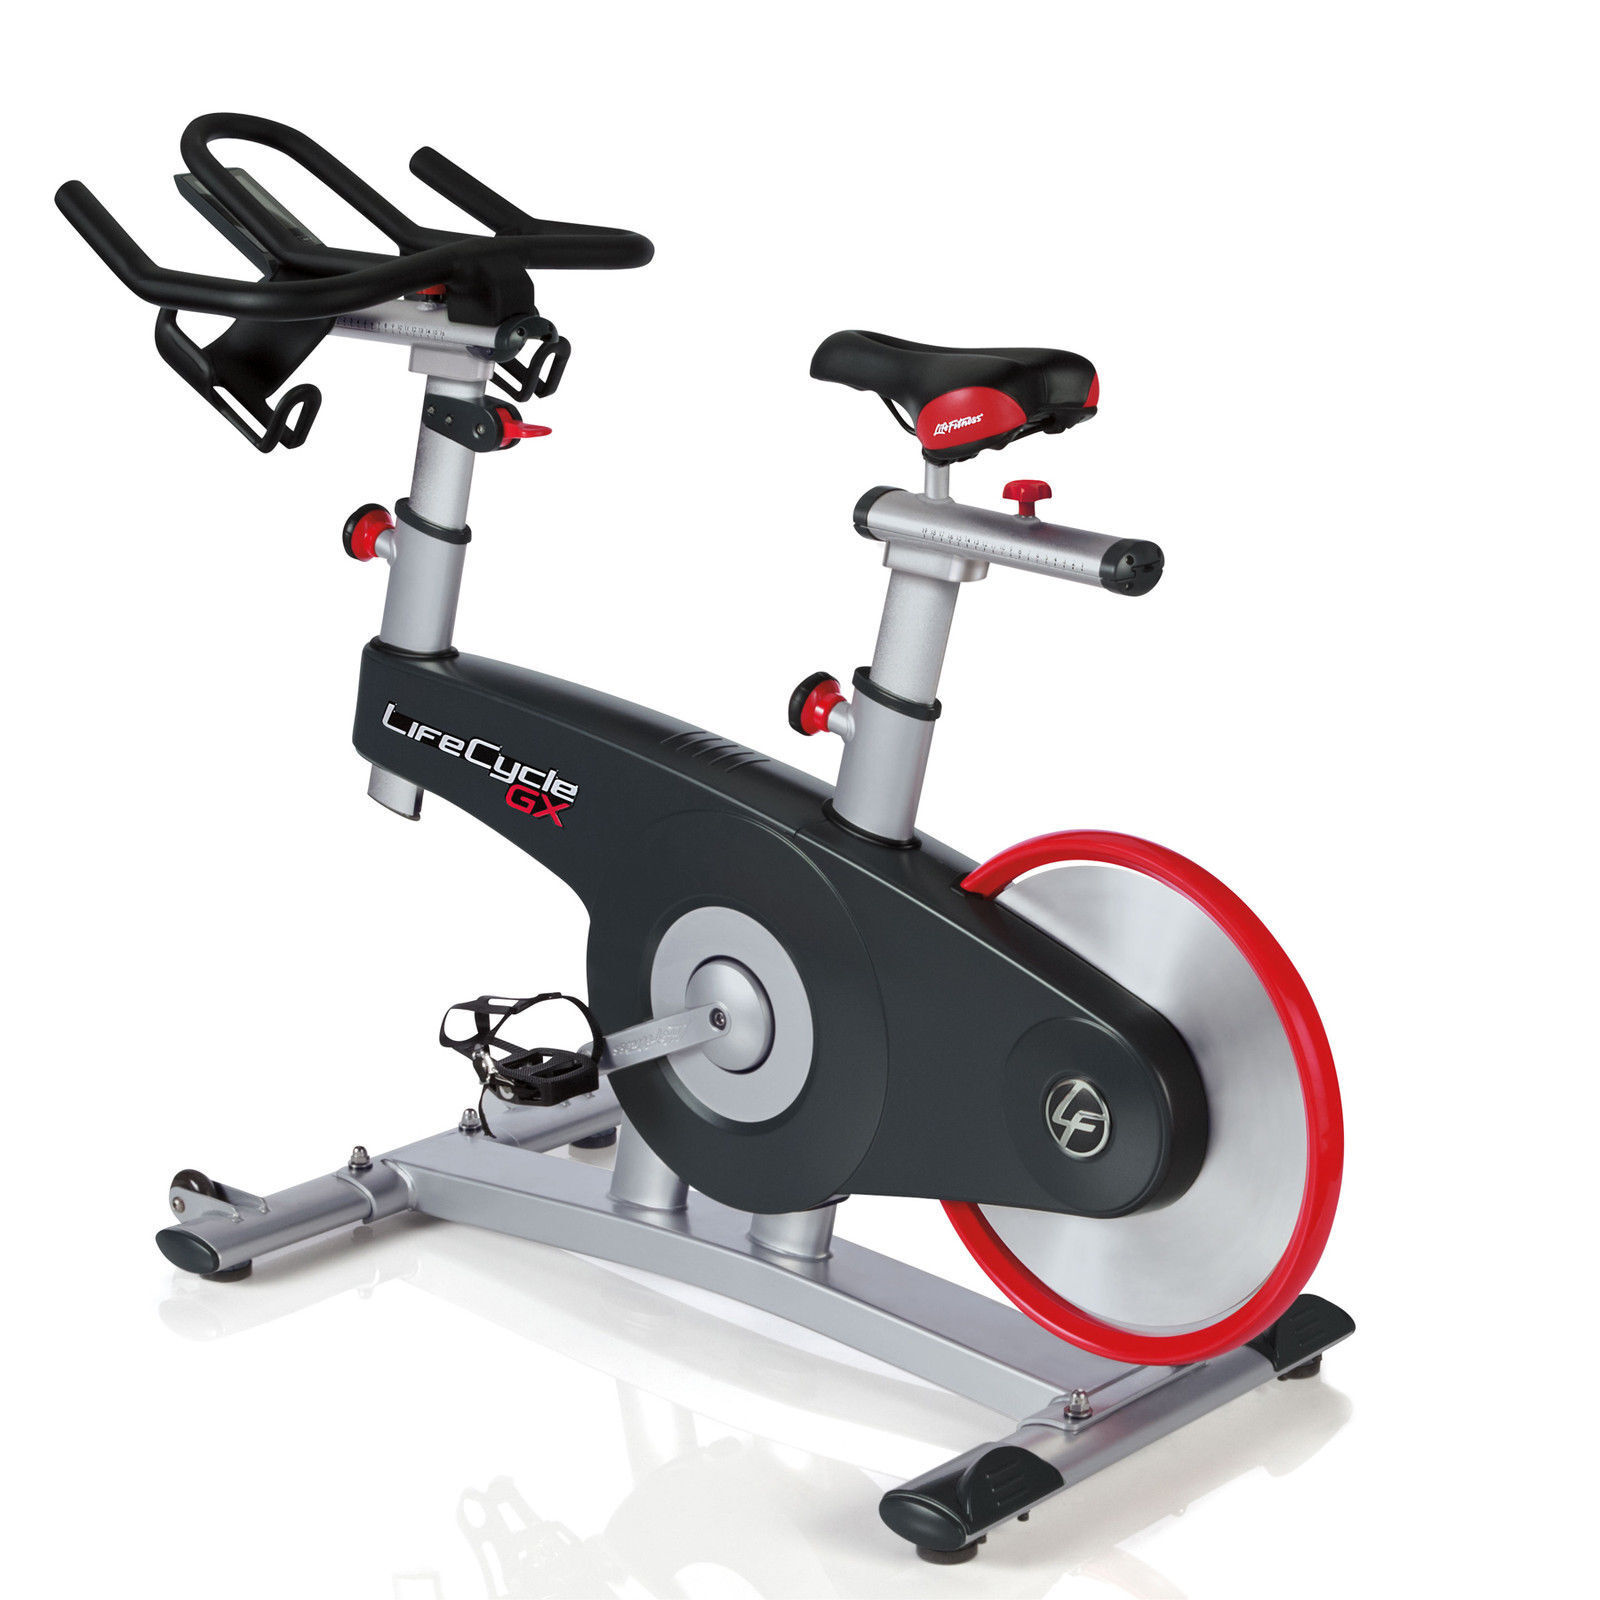 Exercise Bike Pedals Upright Bike Recumbent Bike Parts With Straps JD-16A